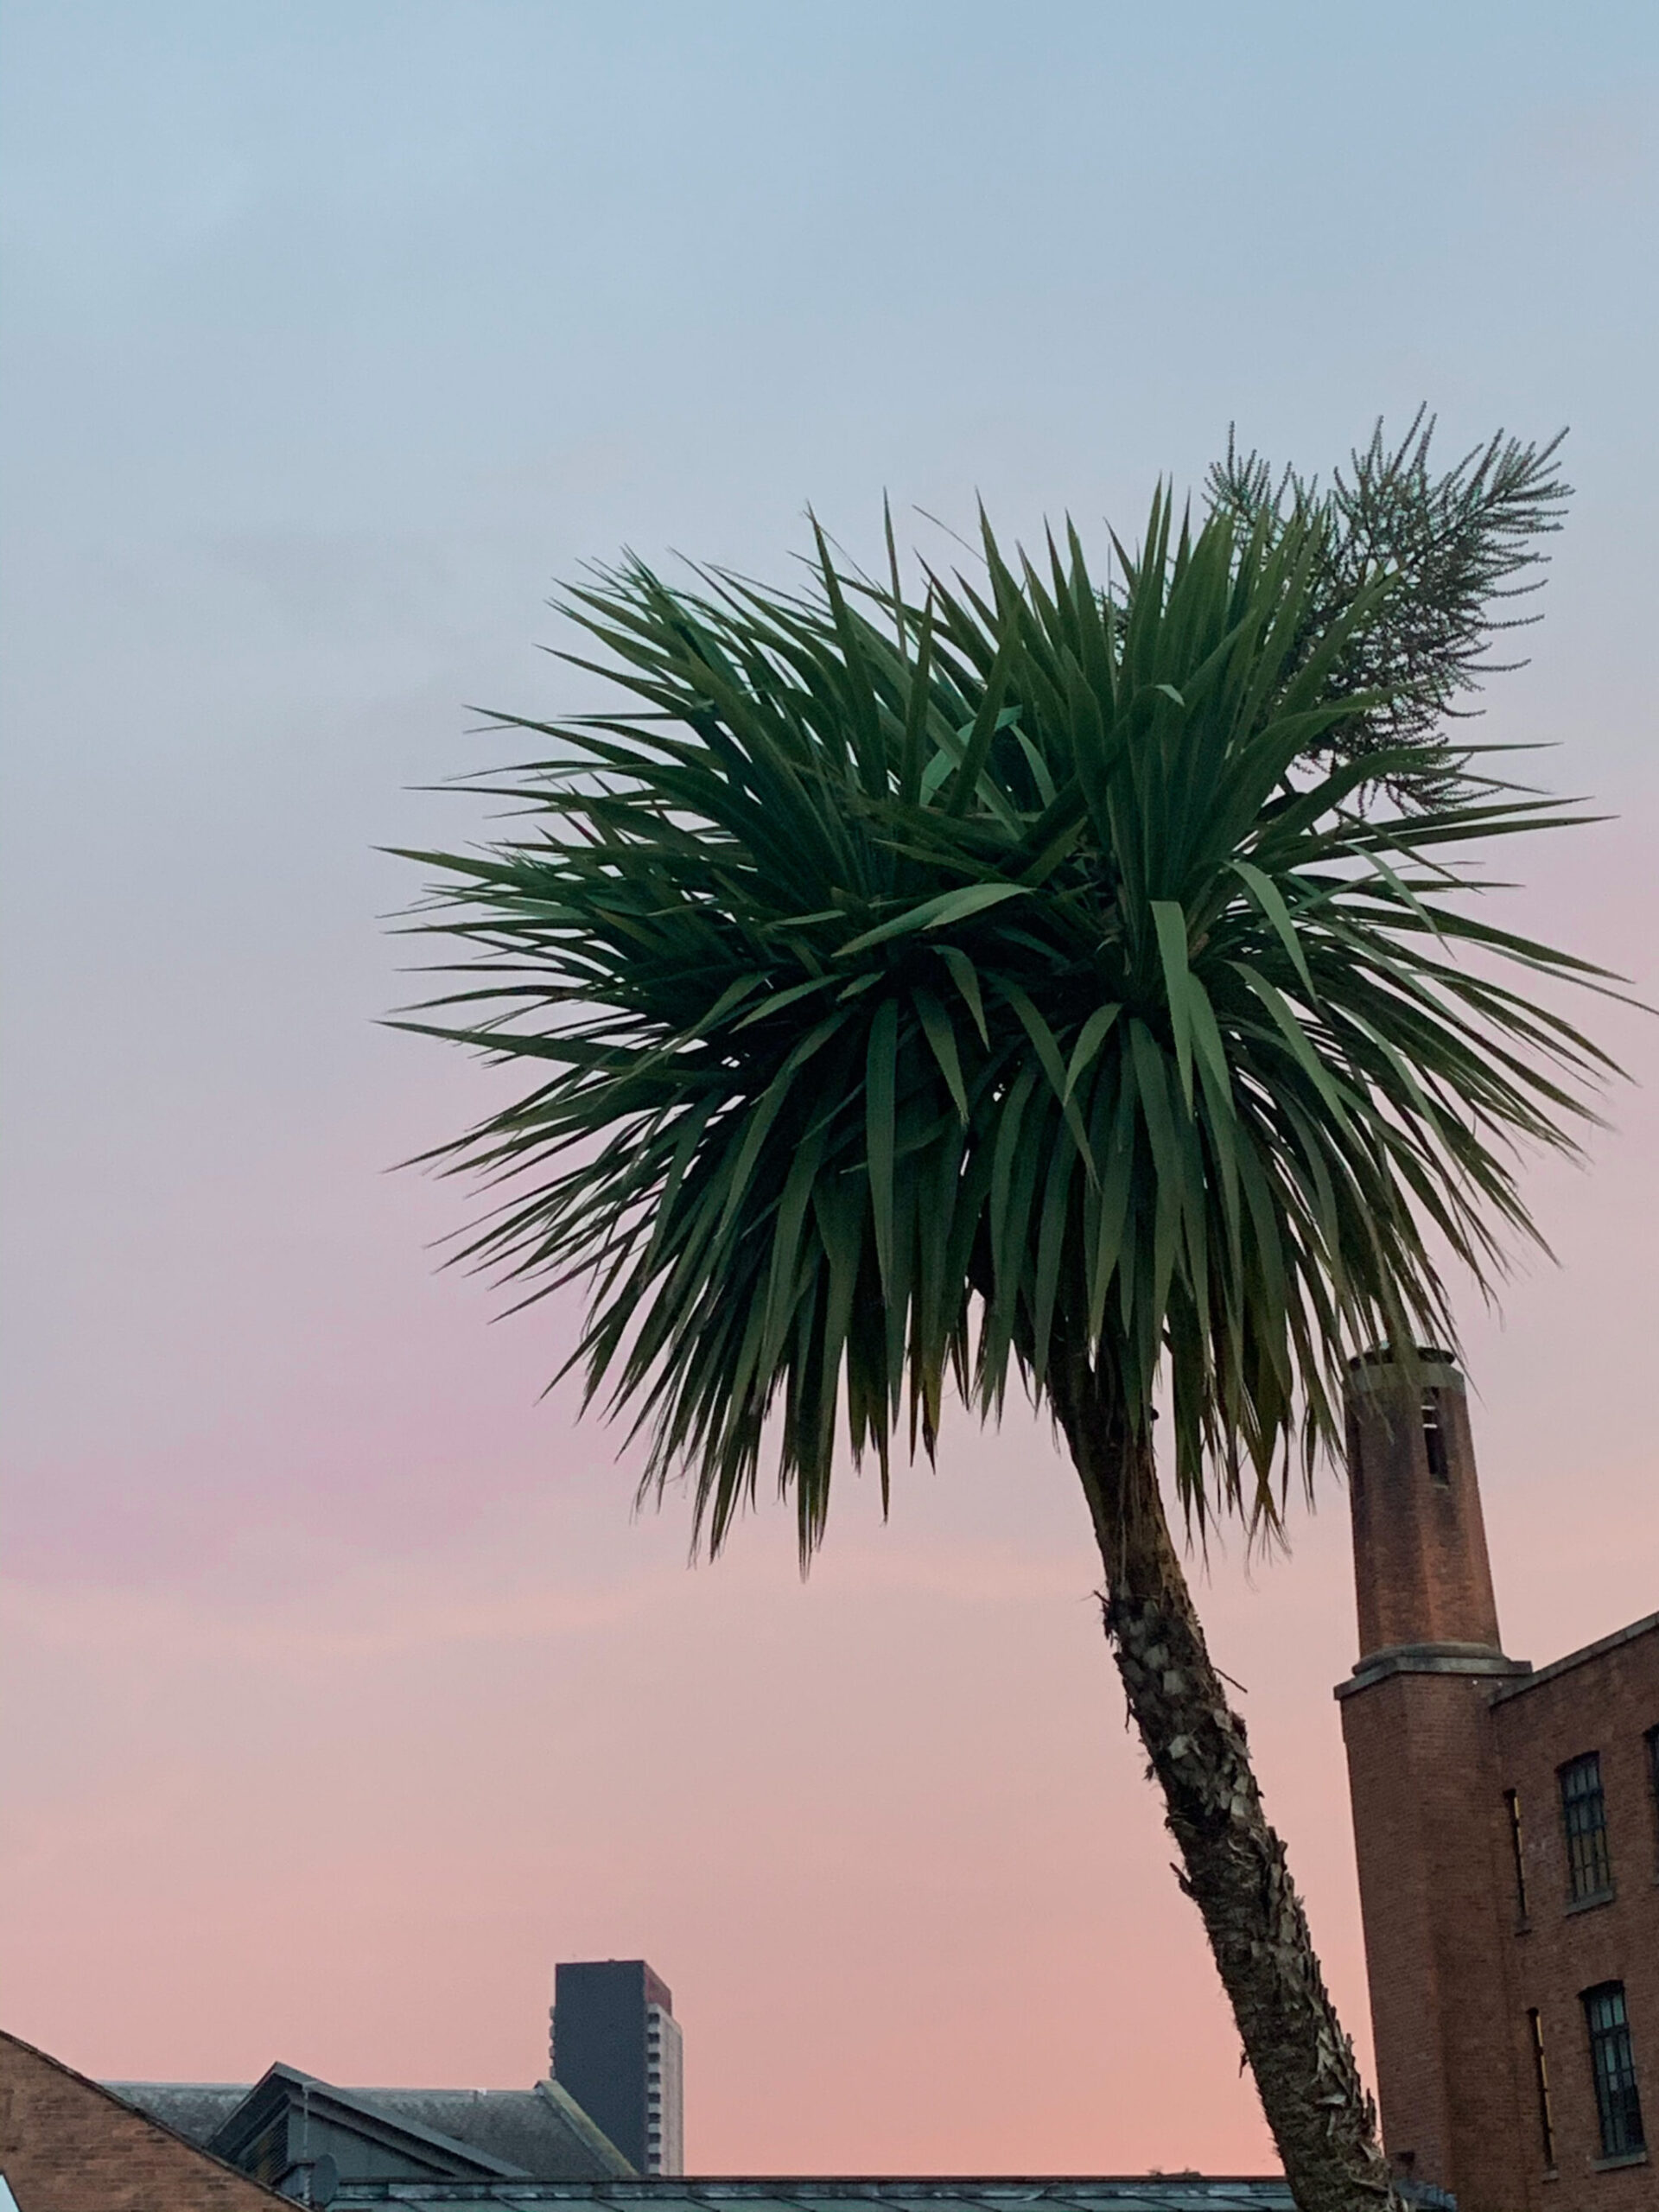 pink sunset skies Manchester palm tree